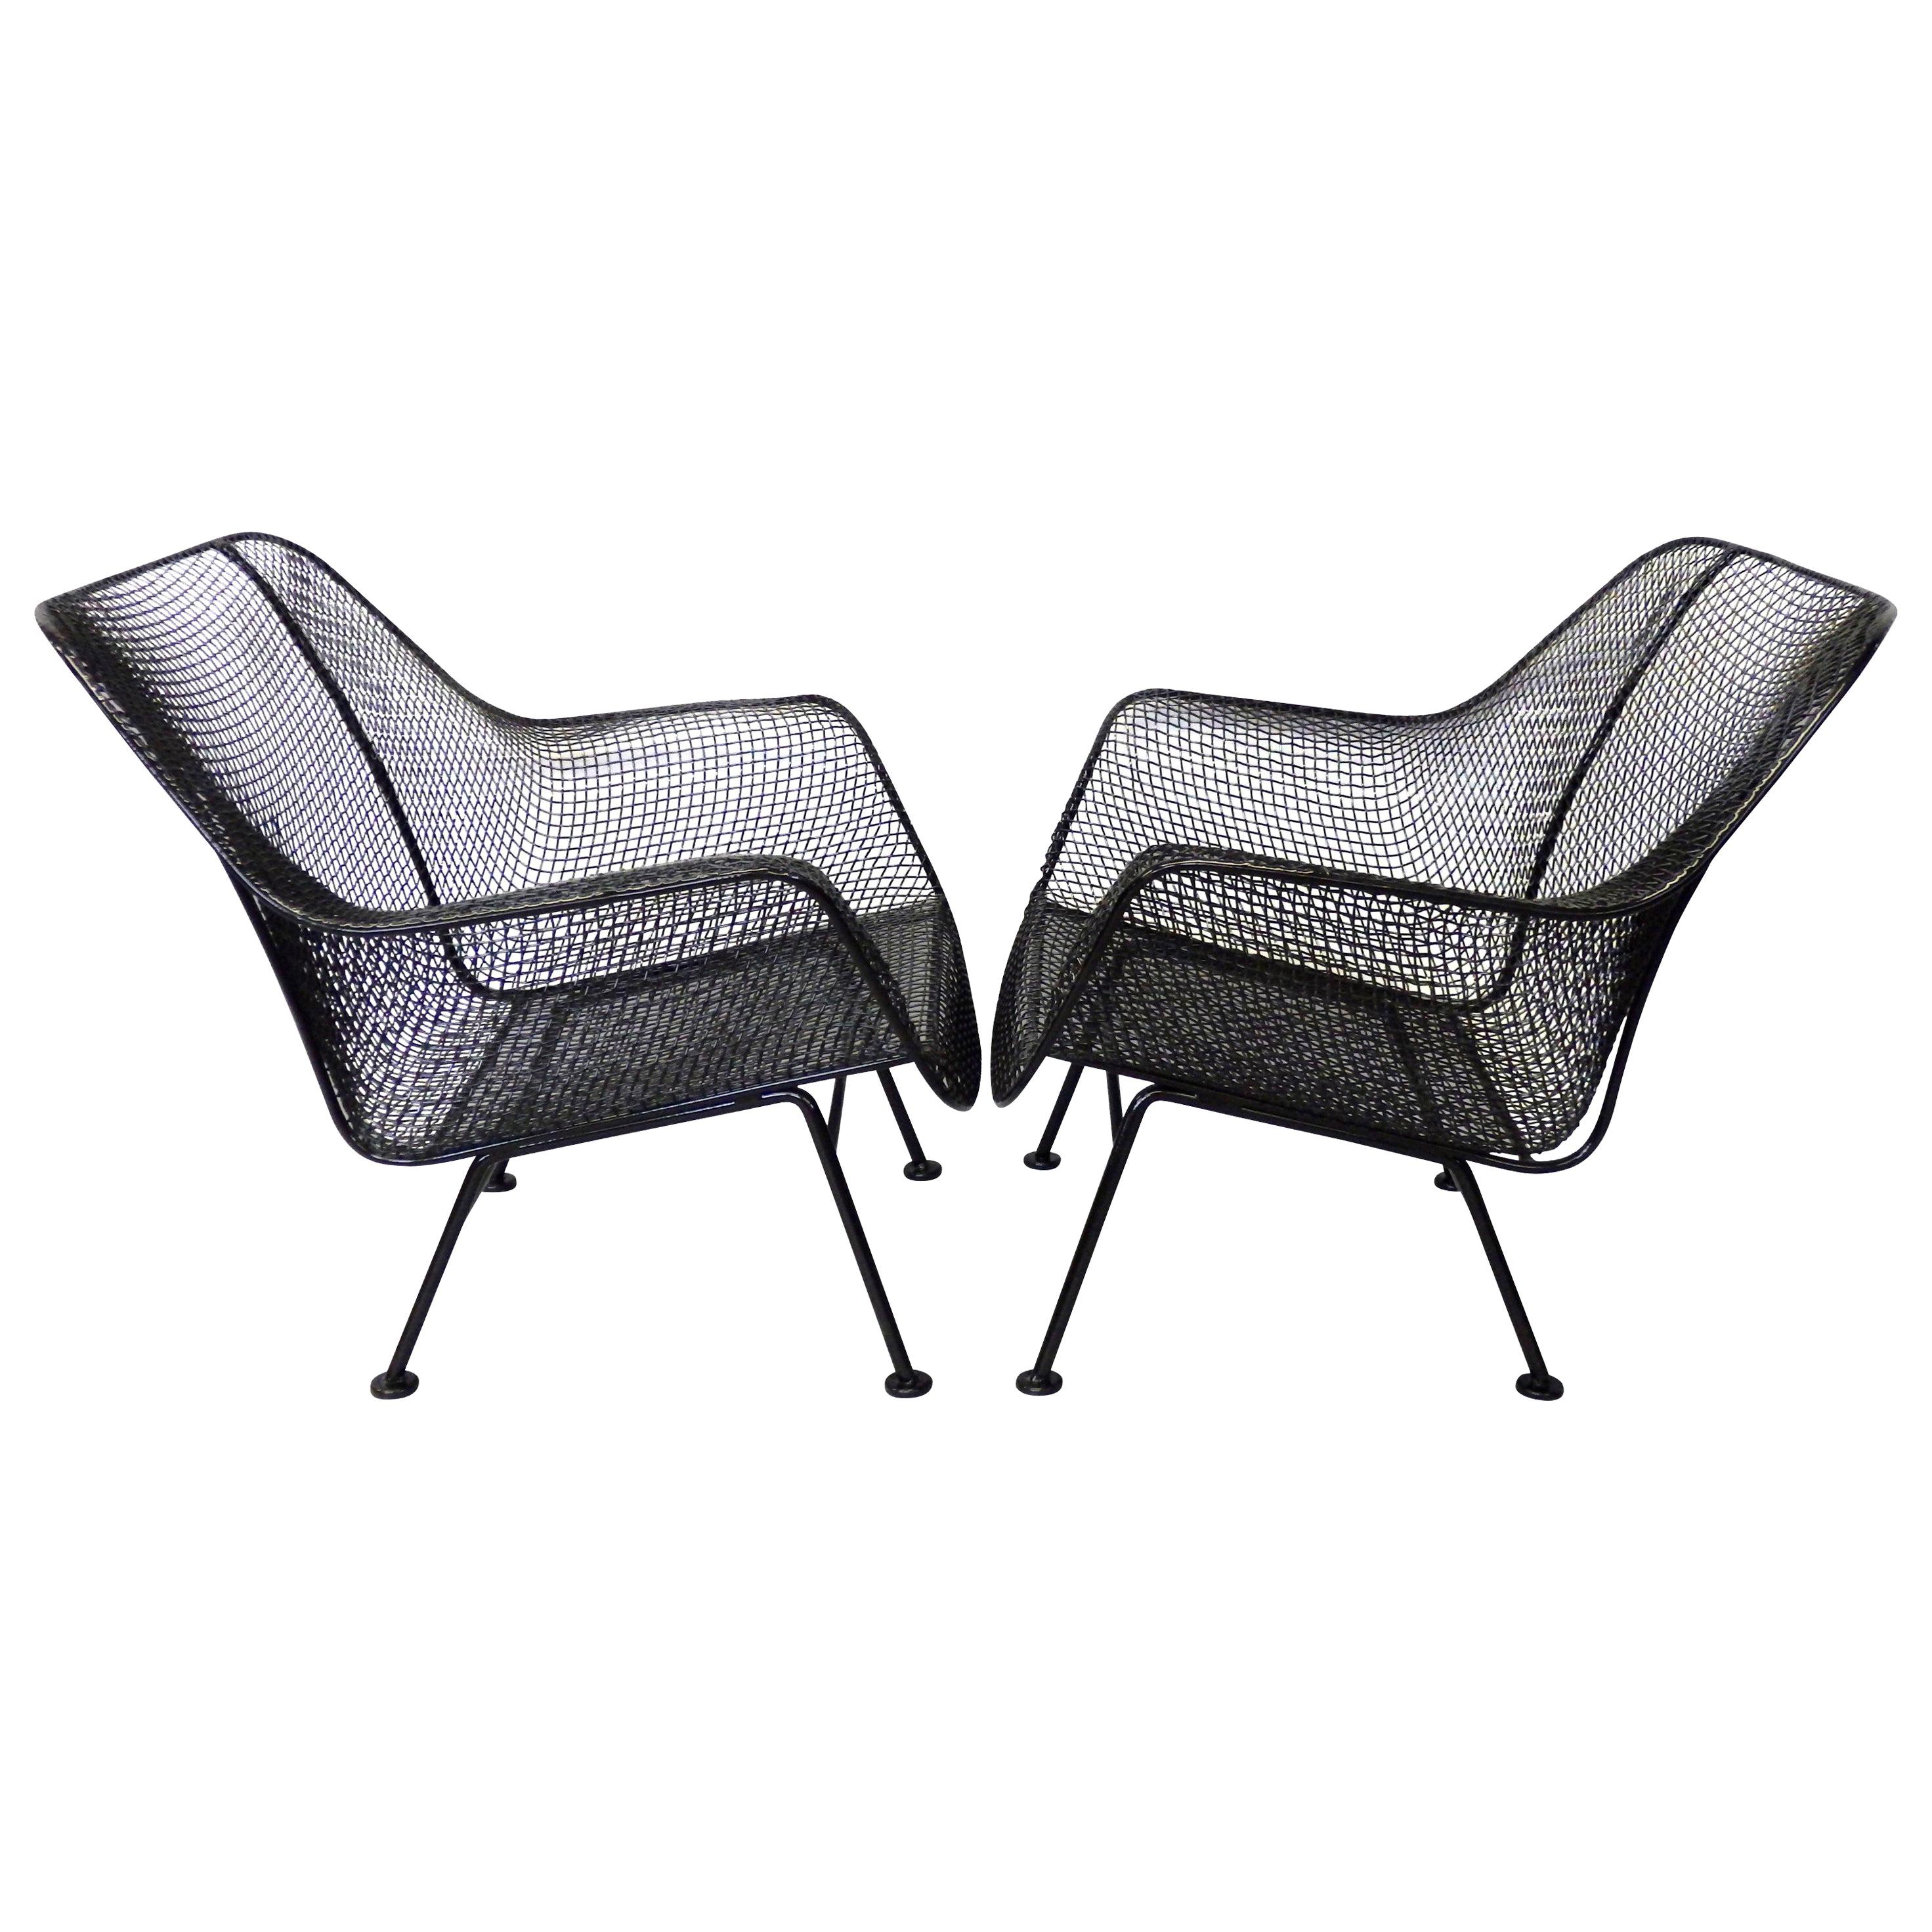 Nicely Restored Russell Woodard Wrought Iron with Steel Mesh Lounge Chairs, Pair